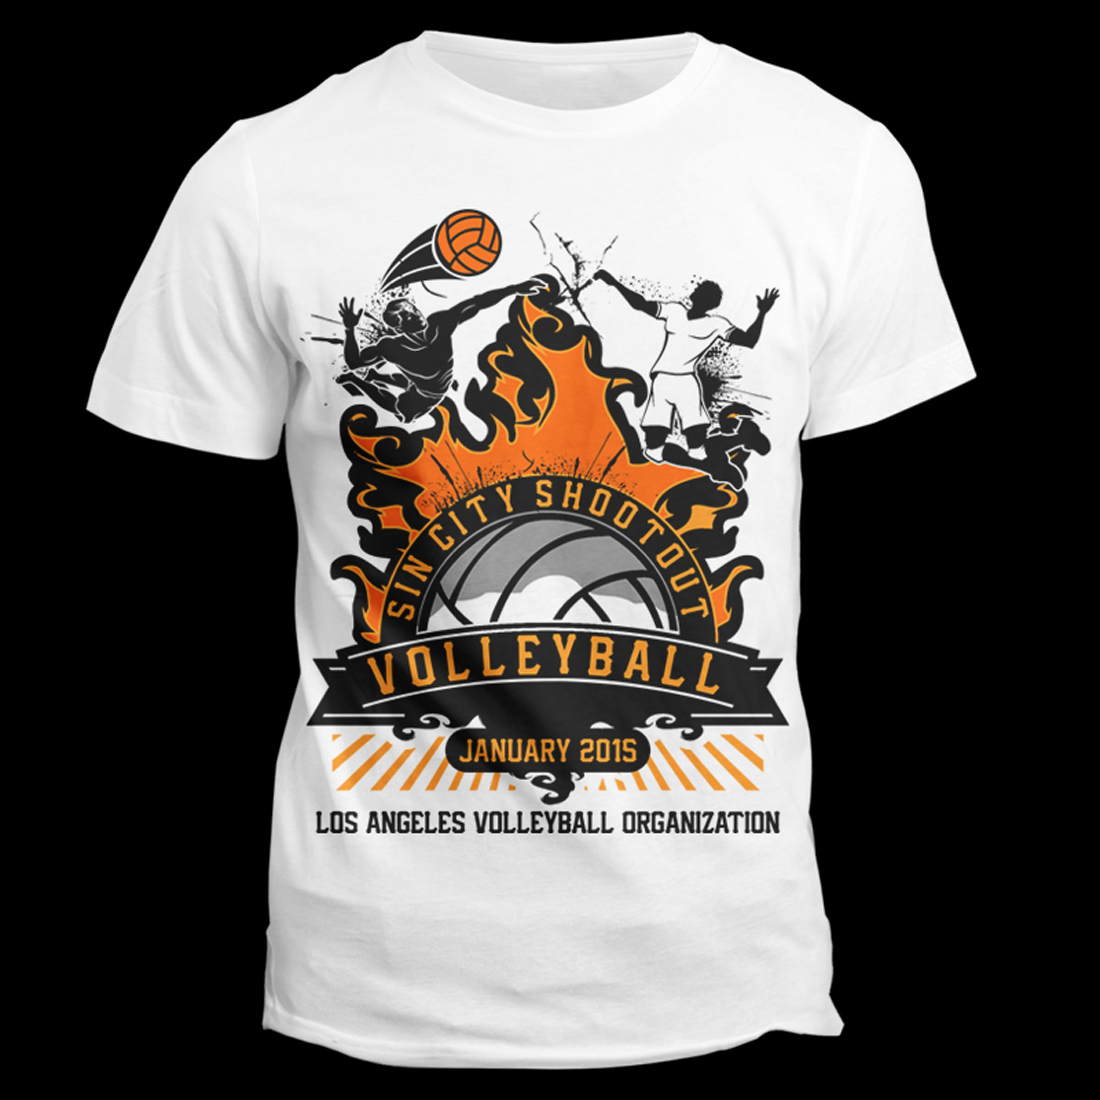 modern bold tshirt design by kid ink - Volleyball T Shirt Design Ideas